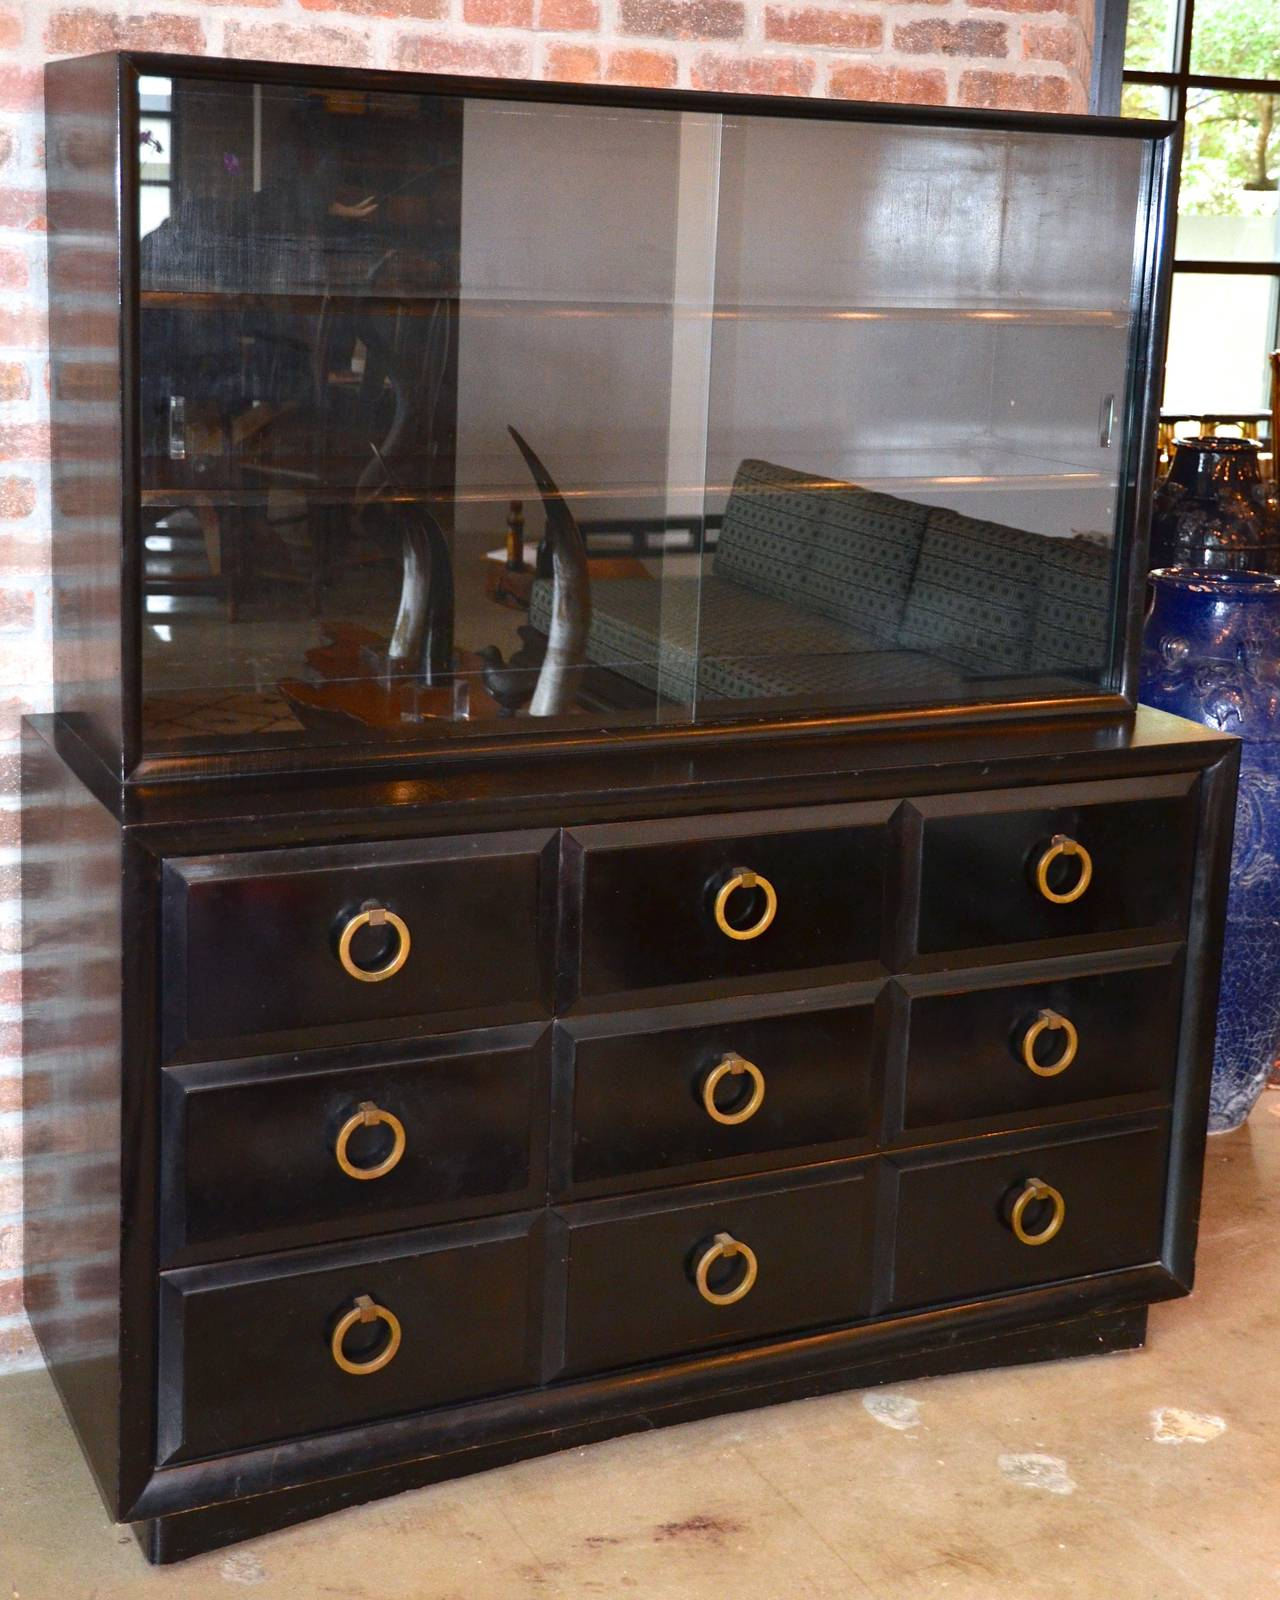 Mid-Century Dresser or Media Cabinet by T. H. Robsjohn-Gibbings for Widdicomb In Good Condition For Sale In Austin, TX